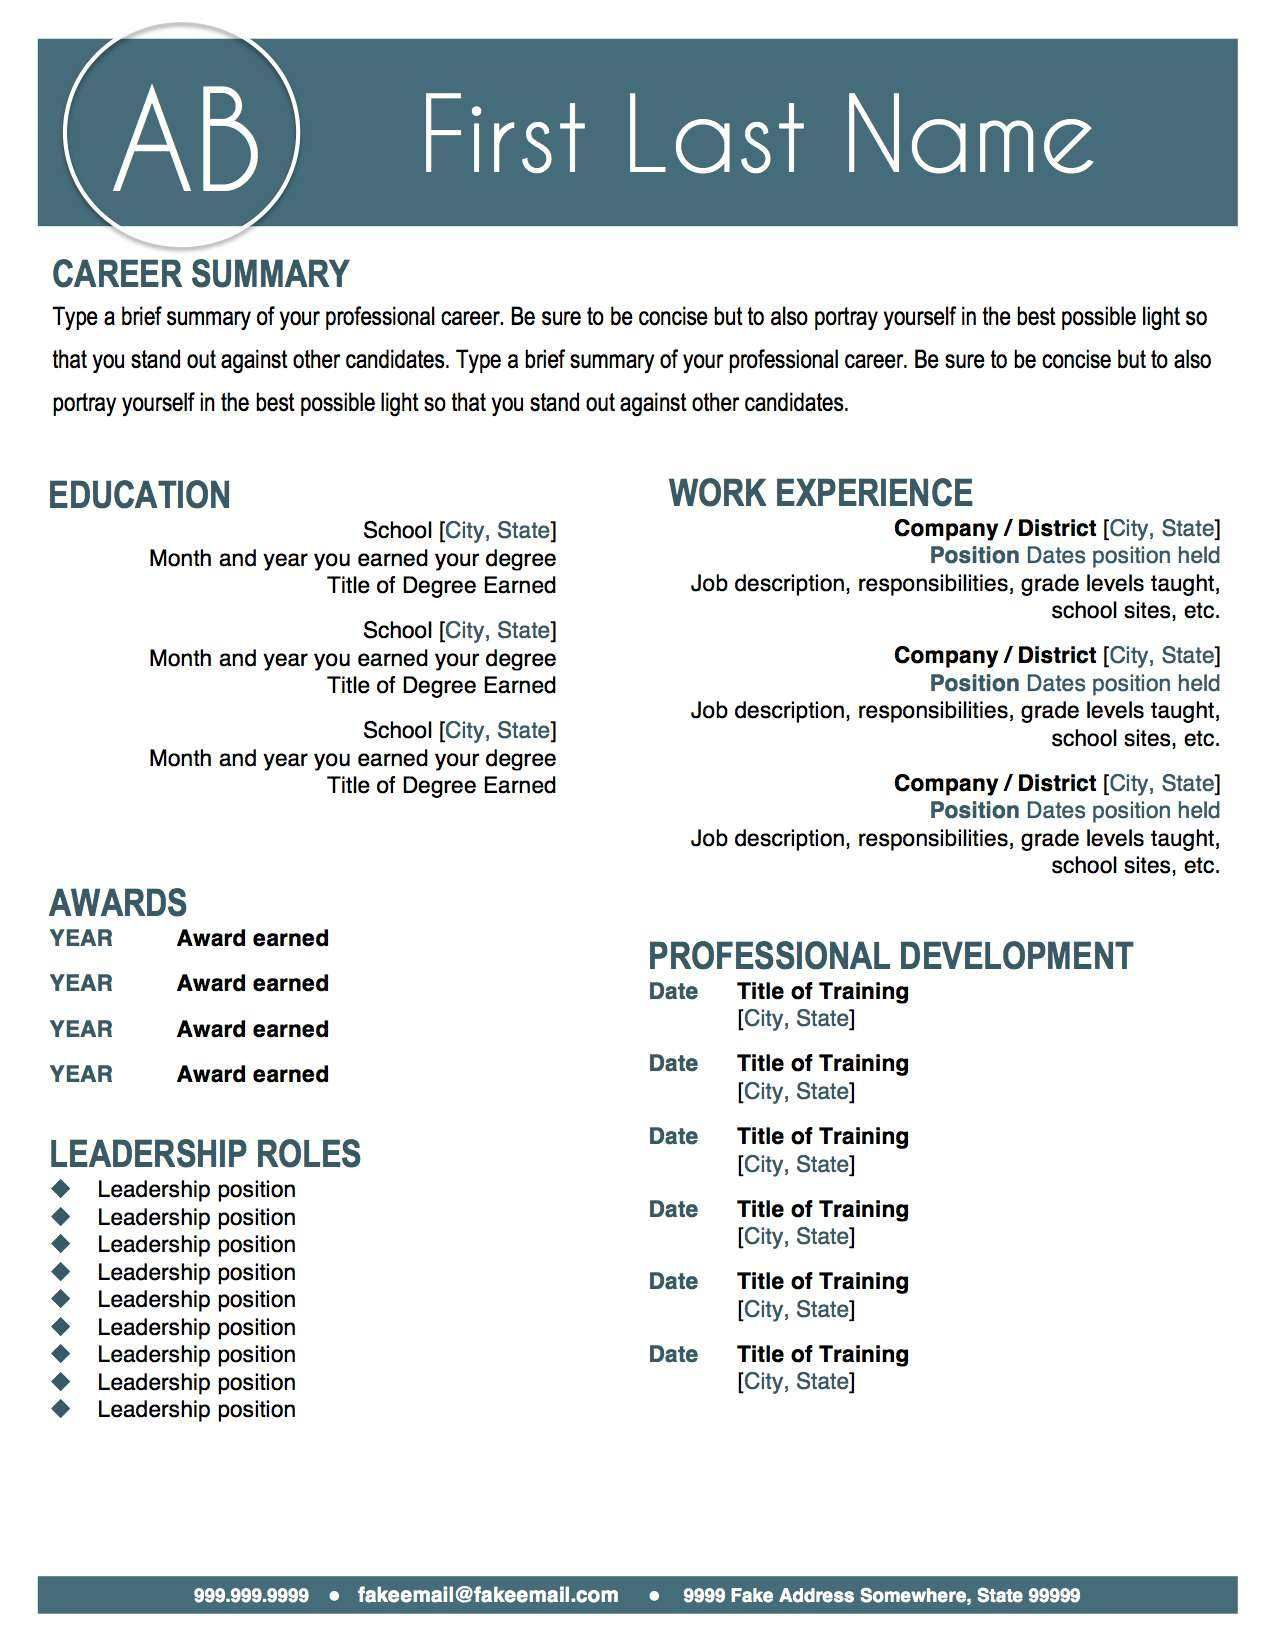 How To Make A Resume In Microsoft Word Entrancing Modern Teal Resume Templatemake Your Resume Pop With This Sleek .